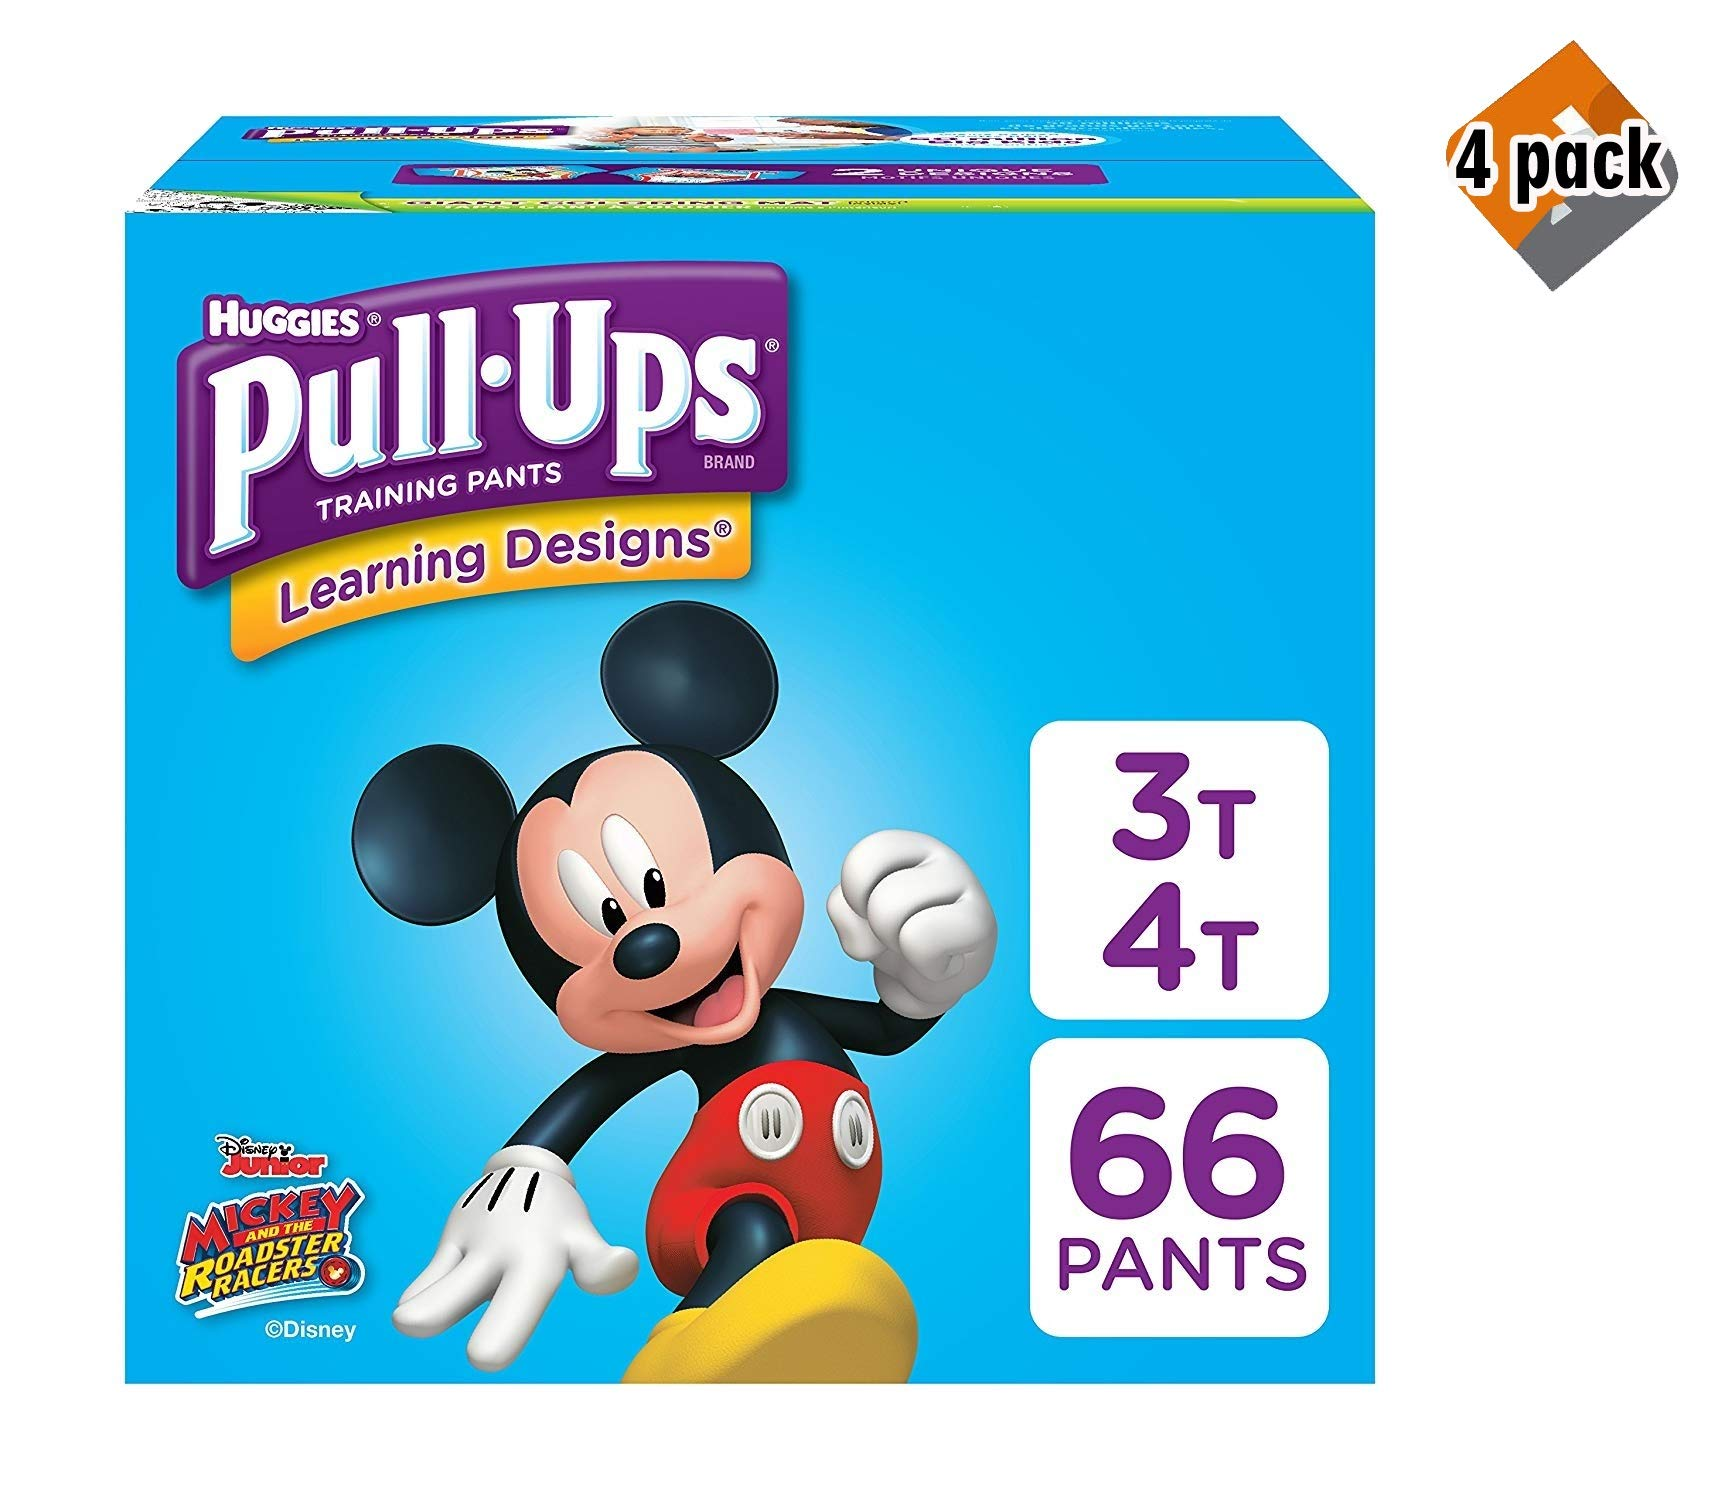 Pull-Ups Learning Designs Training Pants for Boys, 3T-4T (32-40 lbs.), 66 Count, Toddler Potty Training Underwear, Packaging May Vary - 3 Pack